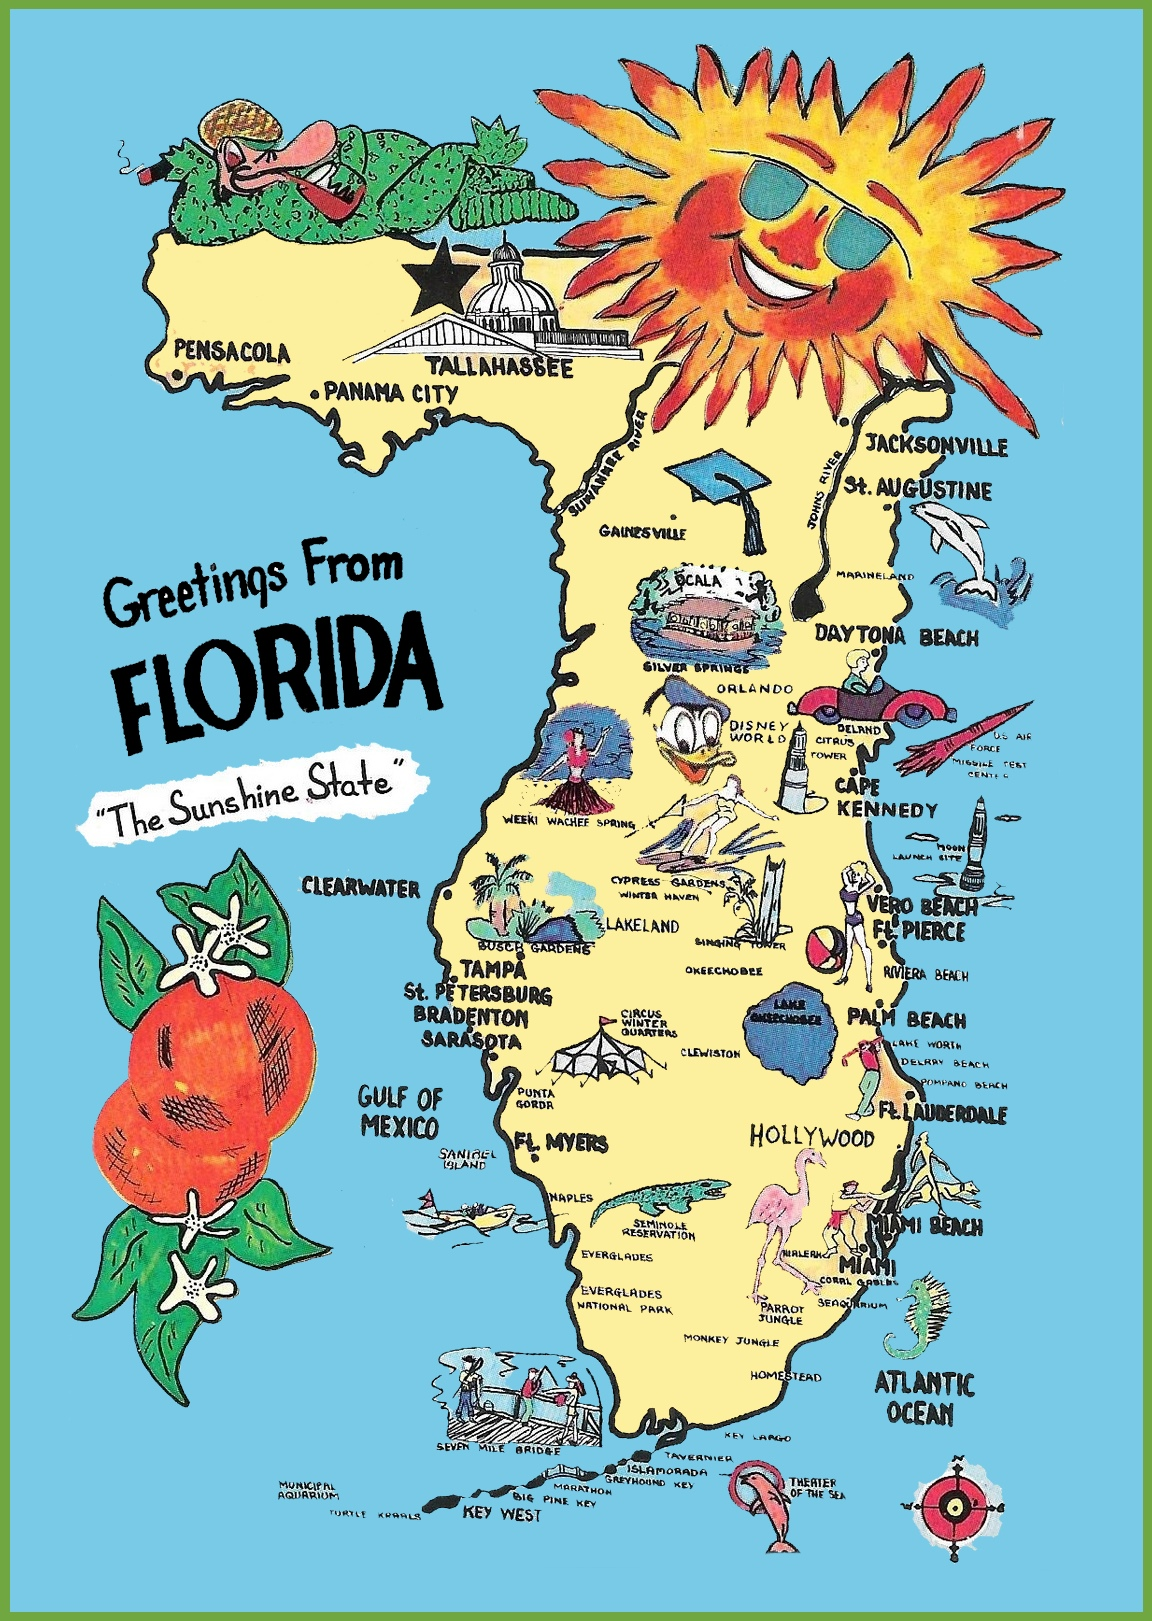 Florida State Map.Pictorial Travel Map Of Florida